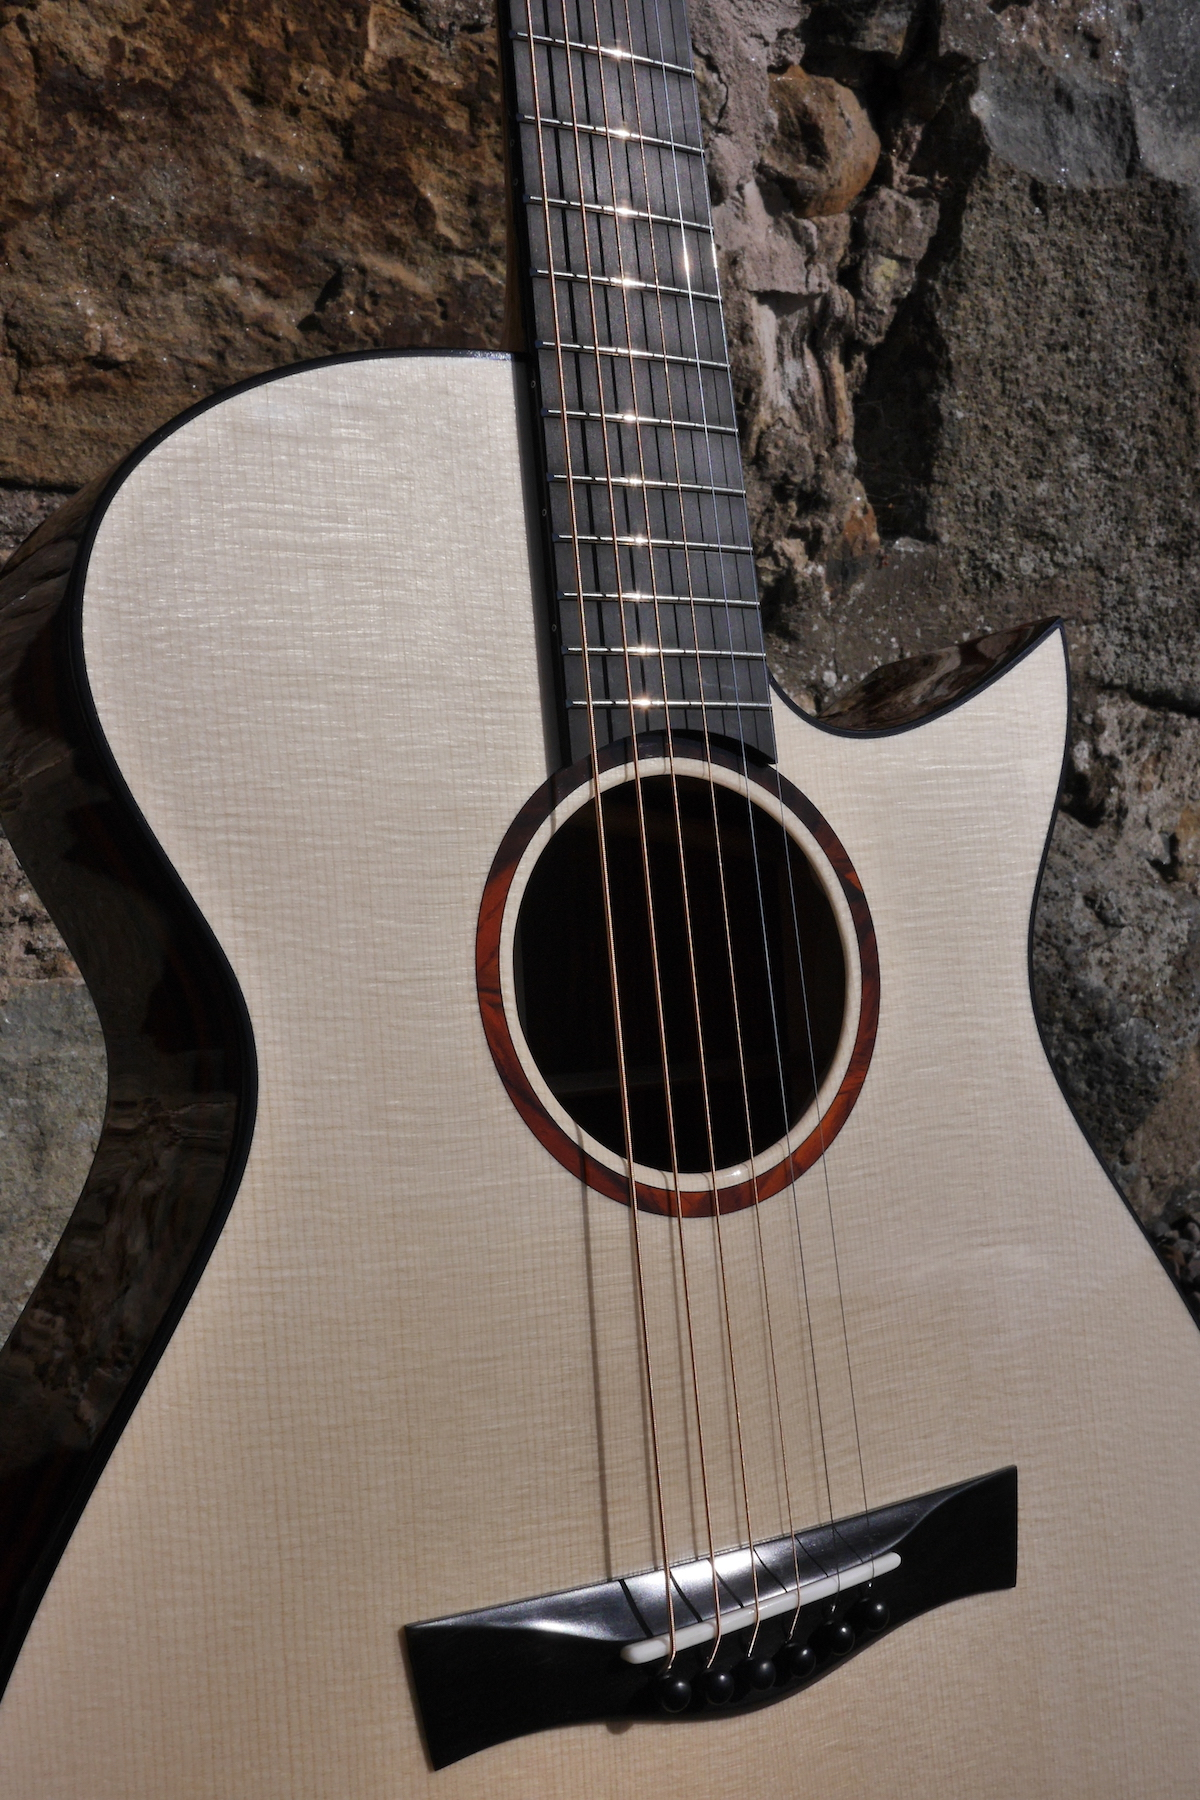 Melamine Lacquer lets the grain shin beautifully and the guitar sing naturally